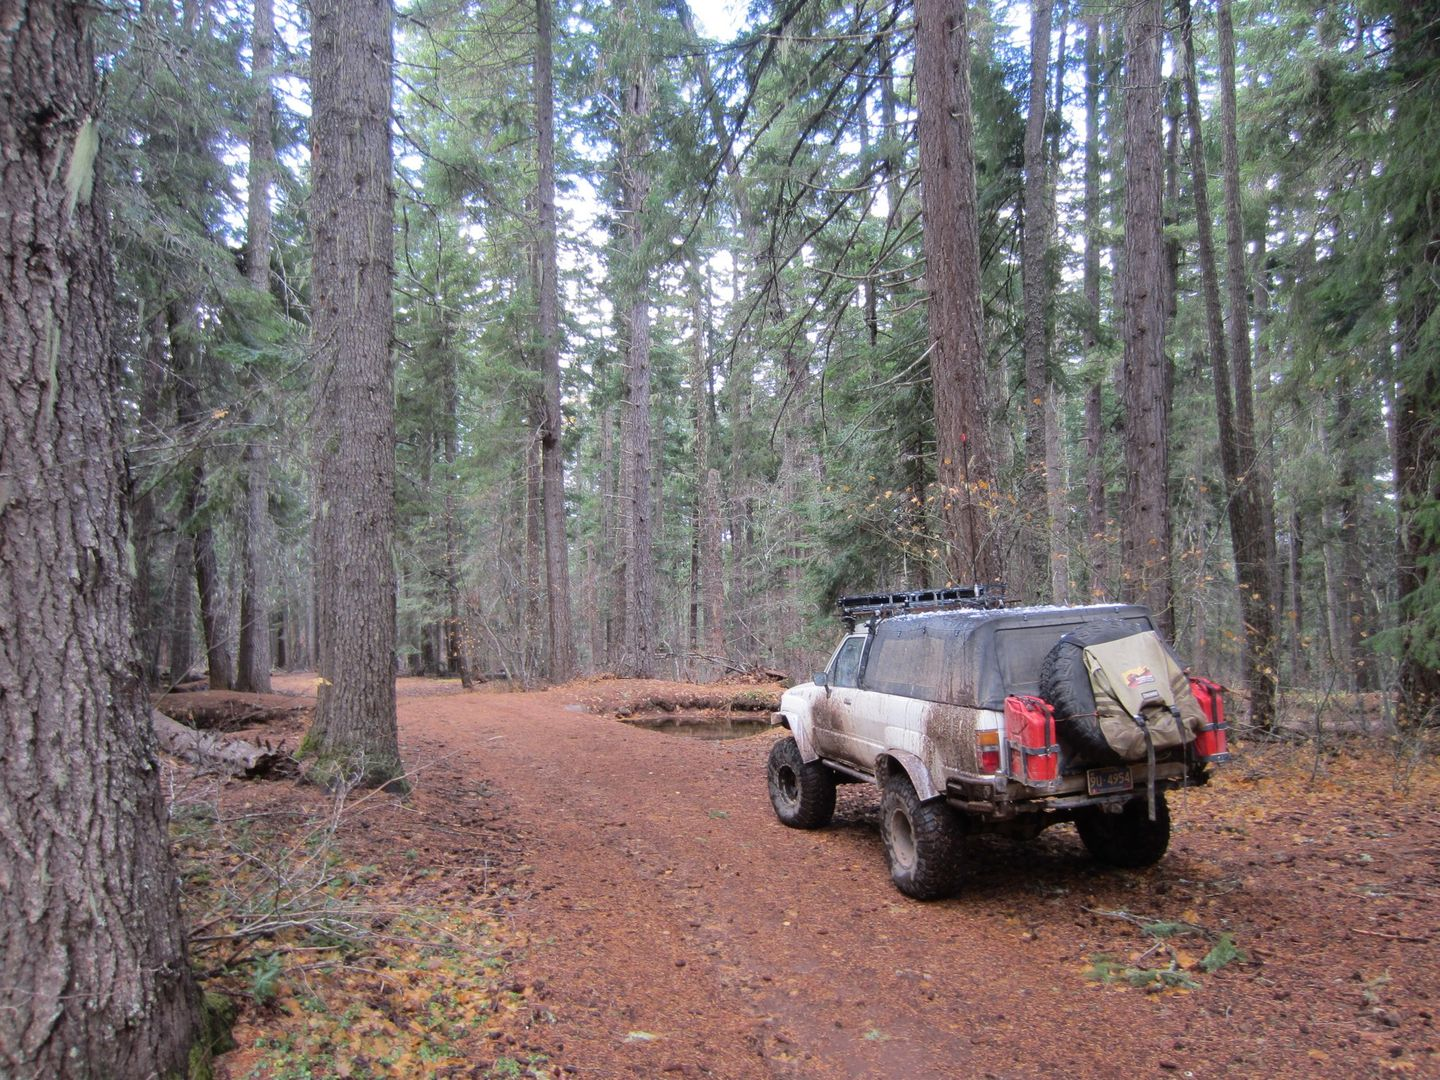 Barlow Trail - Waypoint 14: Lost Boulder Ditch and Campsite with Picnic Table